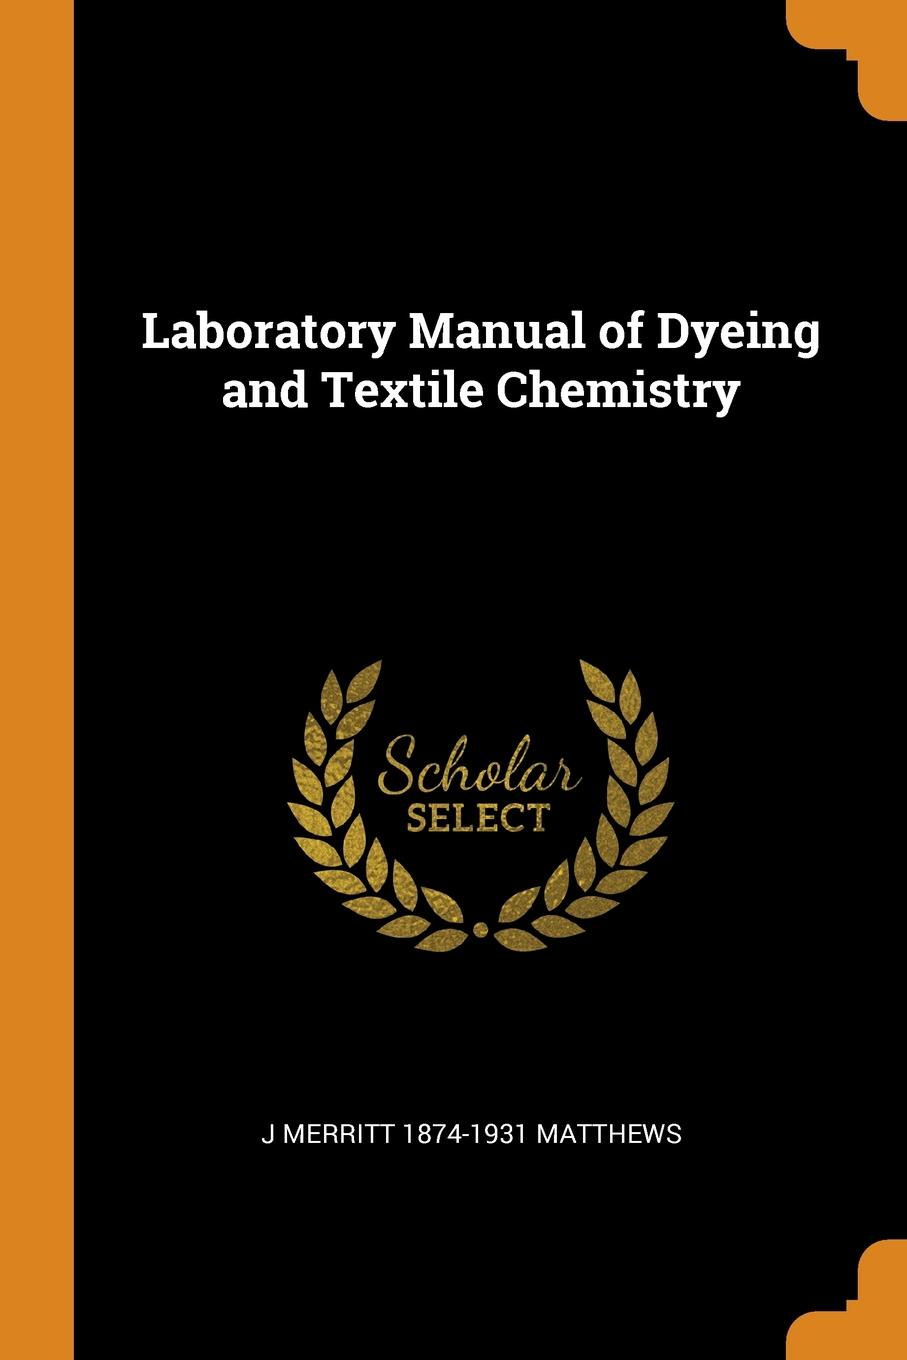 J Merritt 1874-1931 Matthews. Laboratory Manual of Dyeing and Textile Chemistry